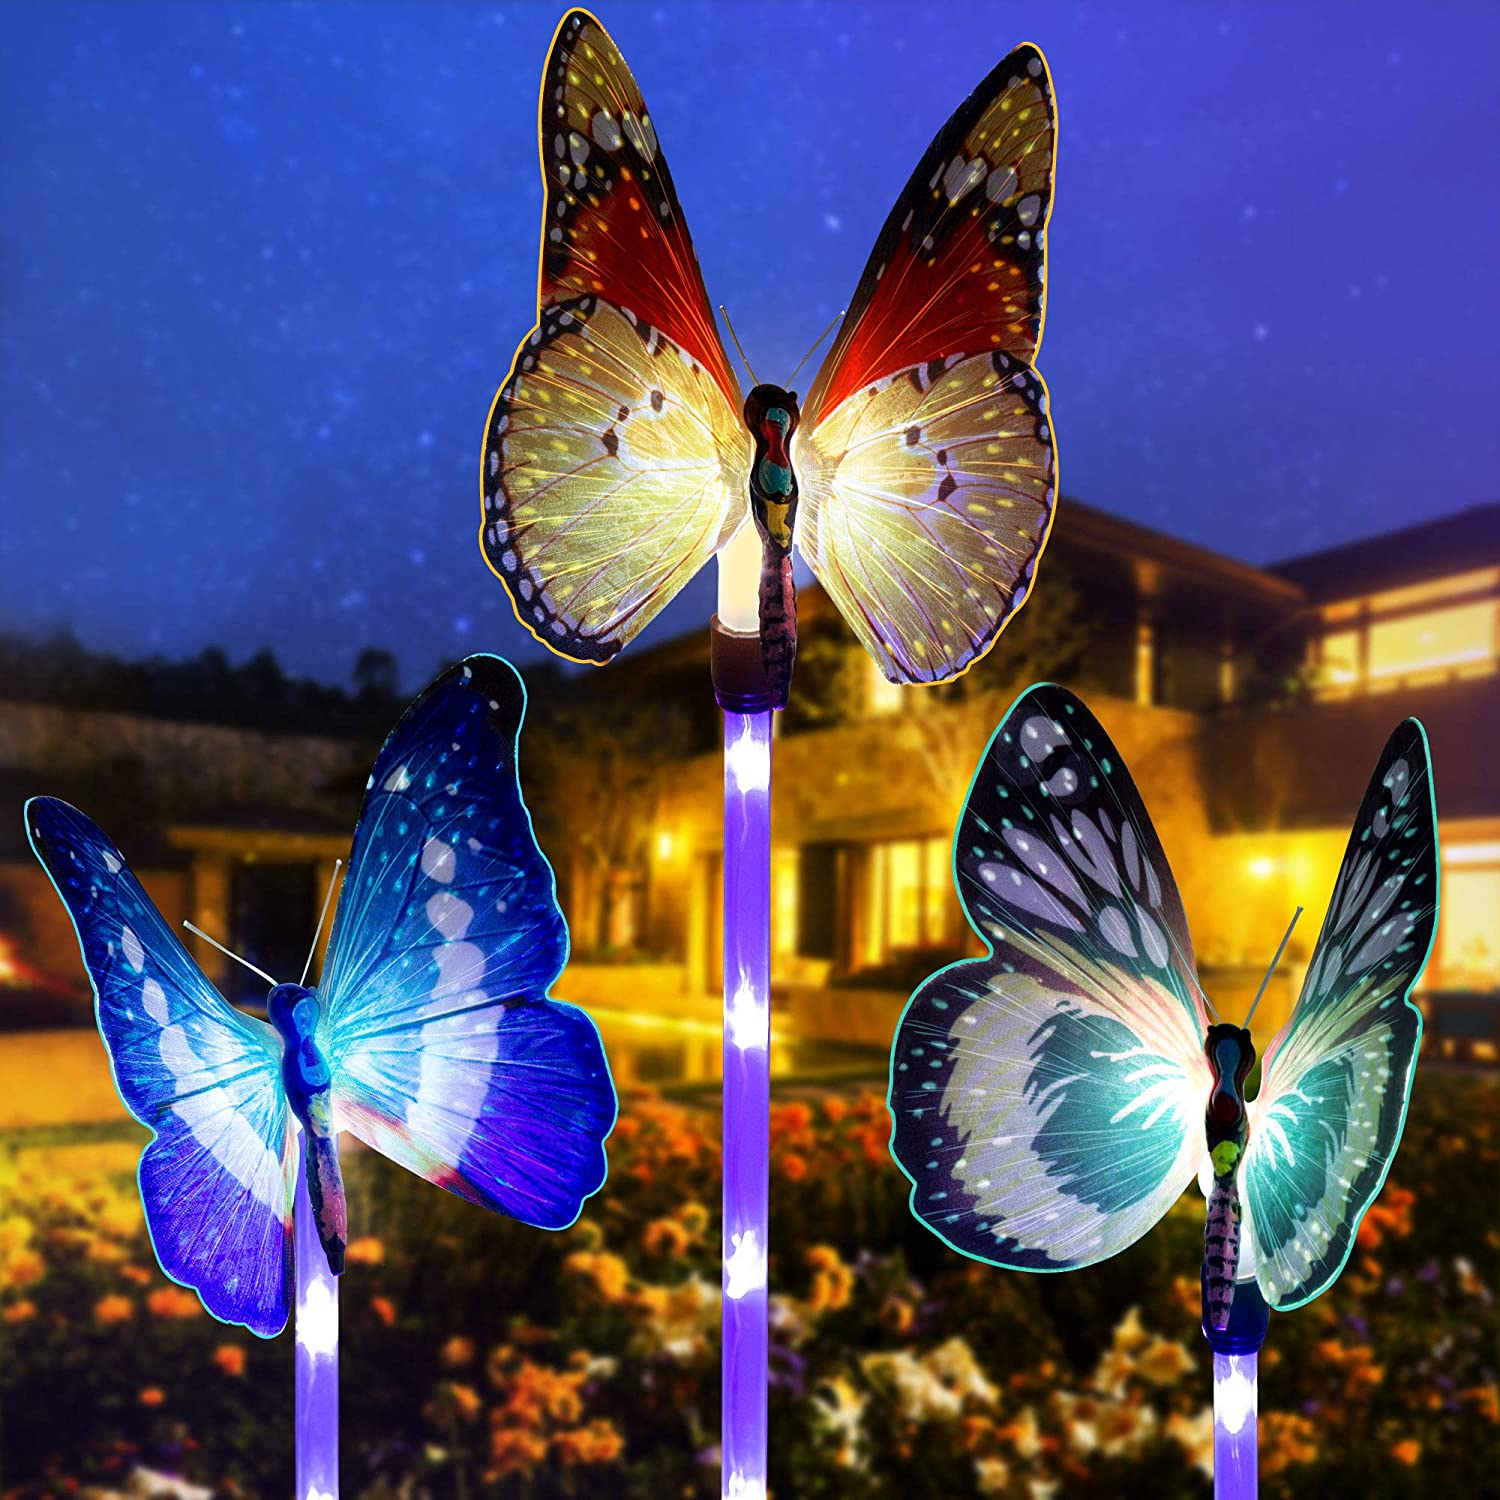 GIGALUMI Garden Solar Lights Outdoor,3 Pack Solar Butterfly Lights,Solar Stake Lights Multi-Color Changing LED Garden Lights,Butterfly Decorative Lights with a Purple LED Lights Stake.